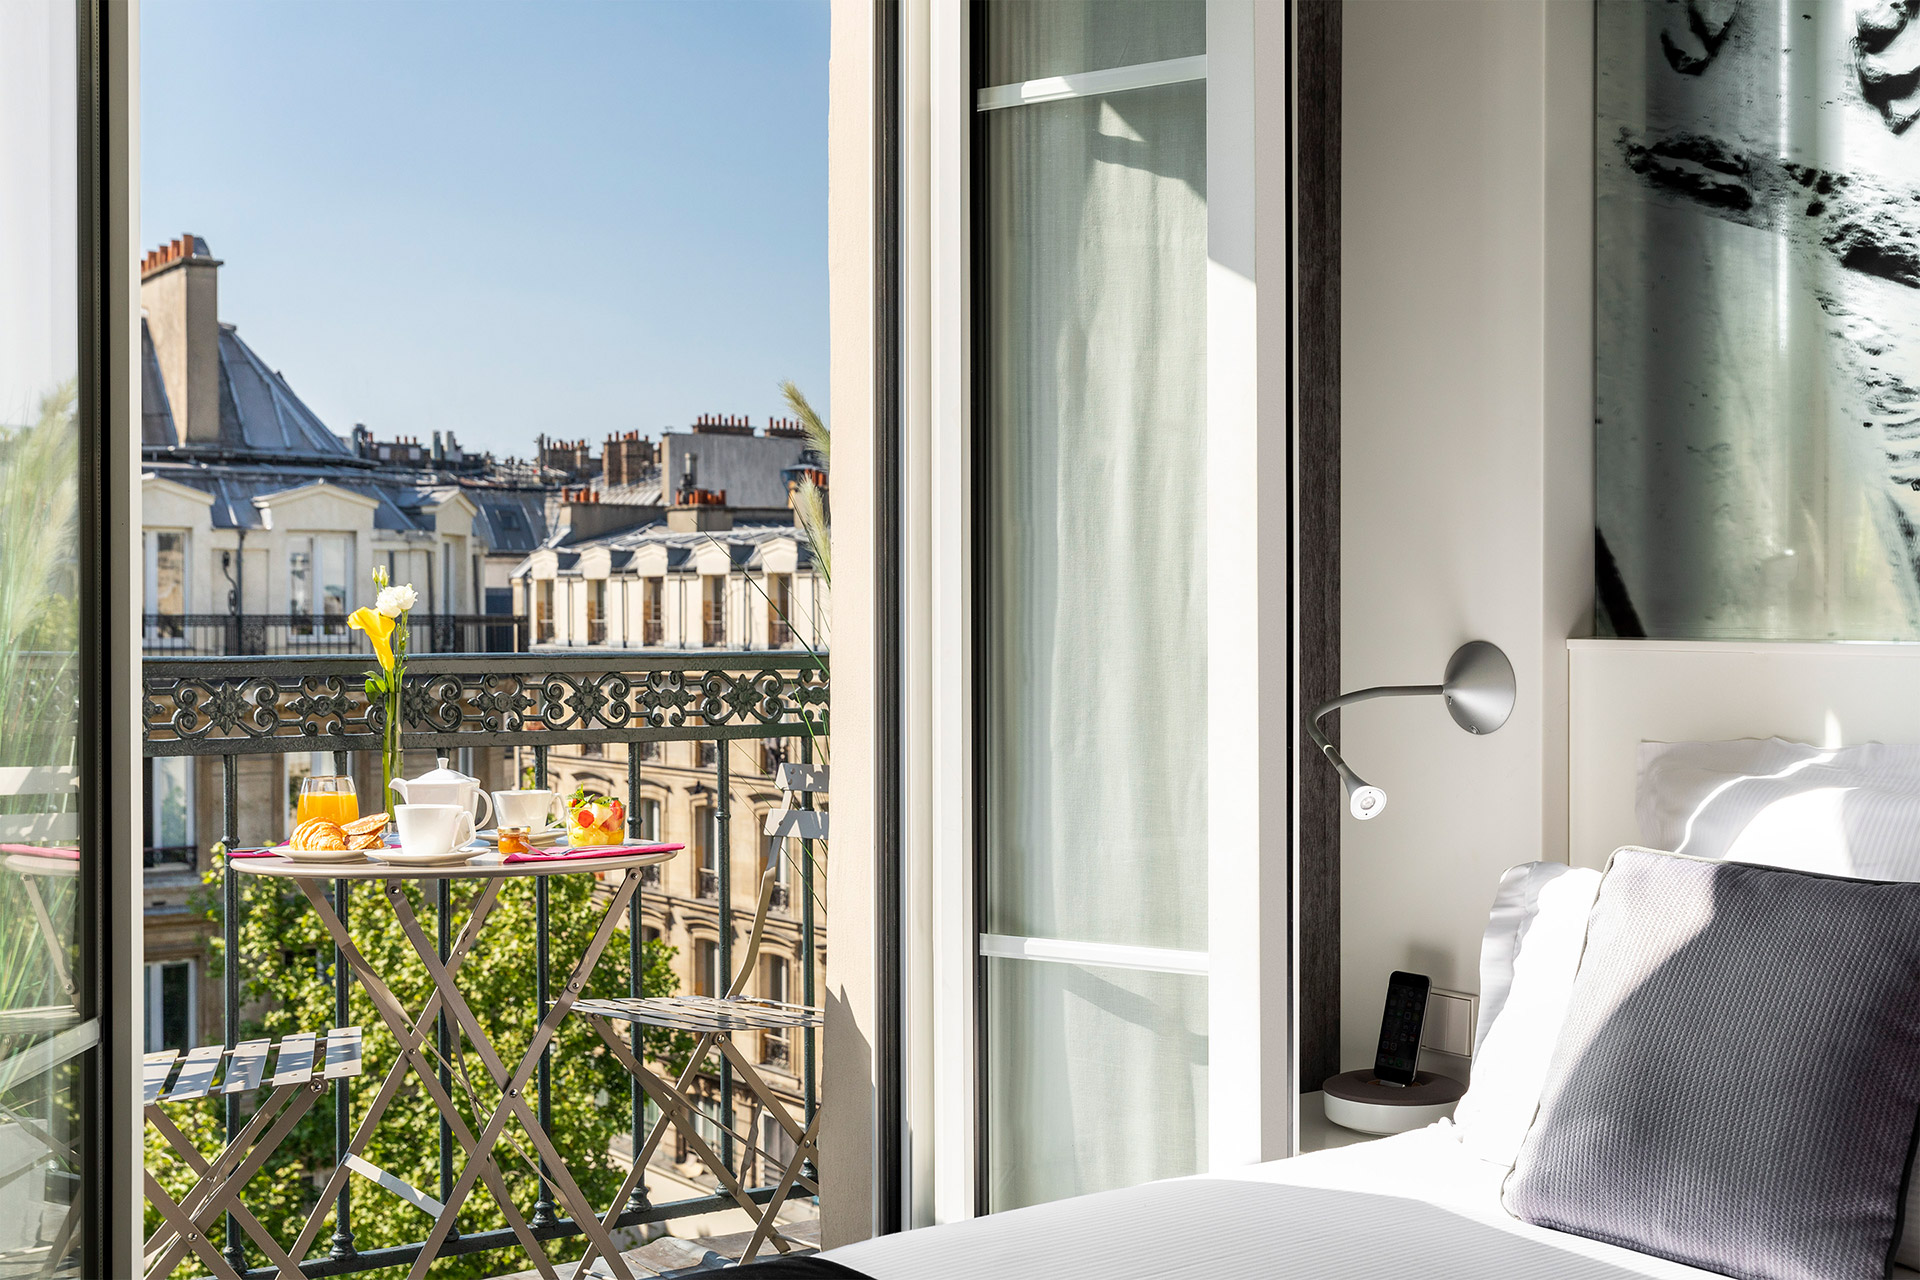 Best Western Premier Marais Grands Boulevards room with balcony